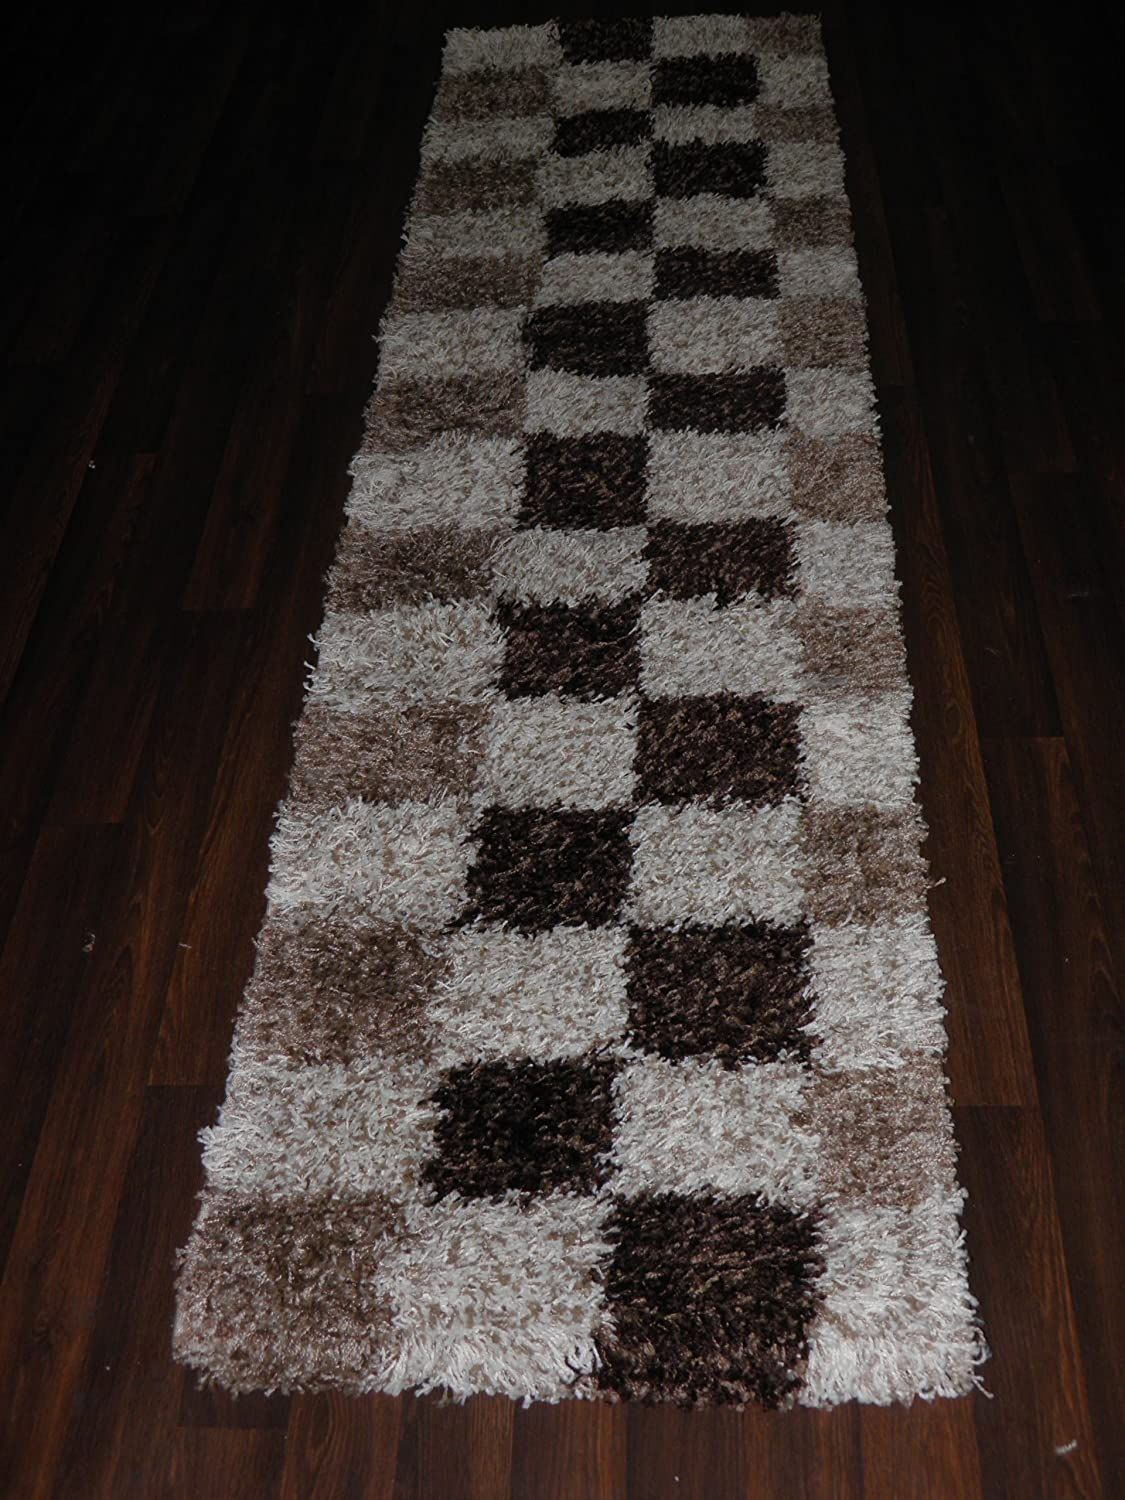 Beige Shaggy Hall Hallyway Carpet Runner Rug Thick Pile Anti Skid 60x220cm